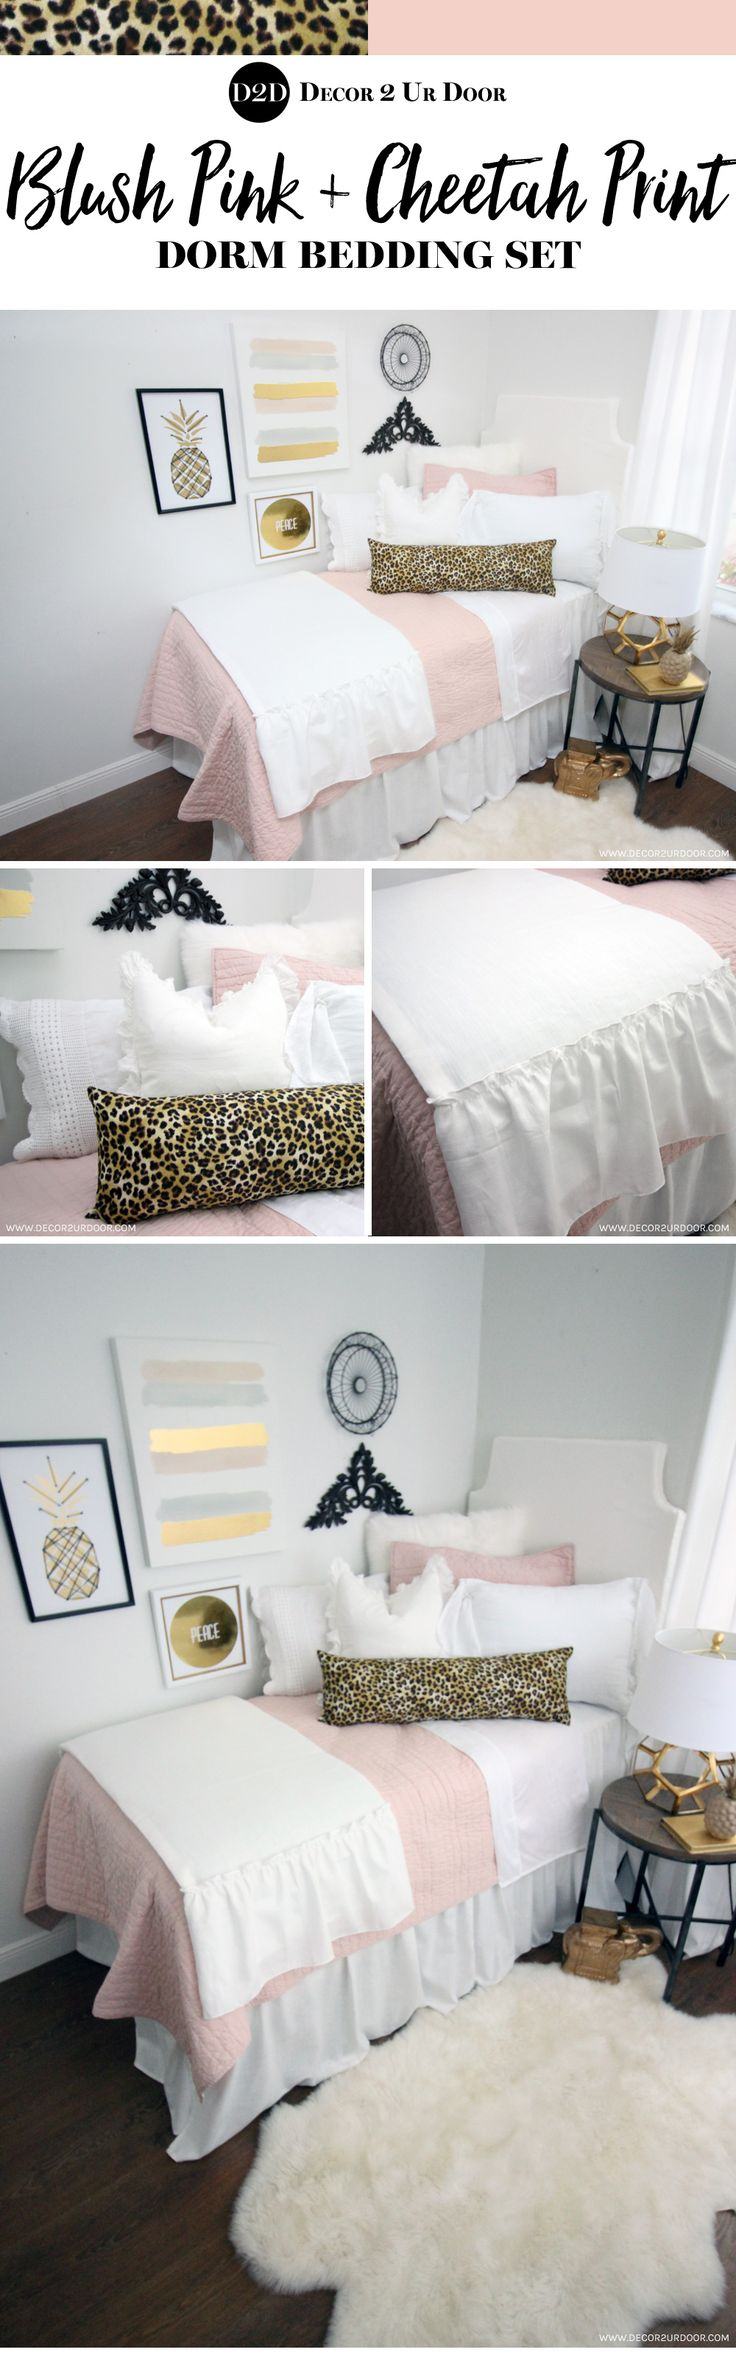 Pink and Cheetah Dorm Room Bedding.  Don't cheet-ah yourself out of this stylish and sophisticated blush pink and cheetah print dorm bedding. We swoon over our blush quilt paired with textured furs, frilly linens, and cheetah print accents. This set screams timeless, trendy, and totally gorgeous dorm room bedding. Your friends will definitely be jealous of your sassy new digs!